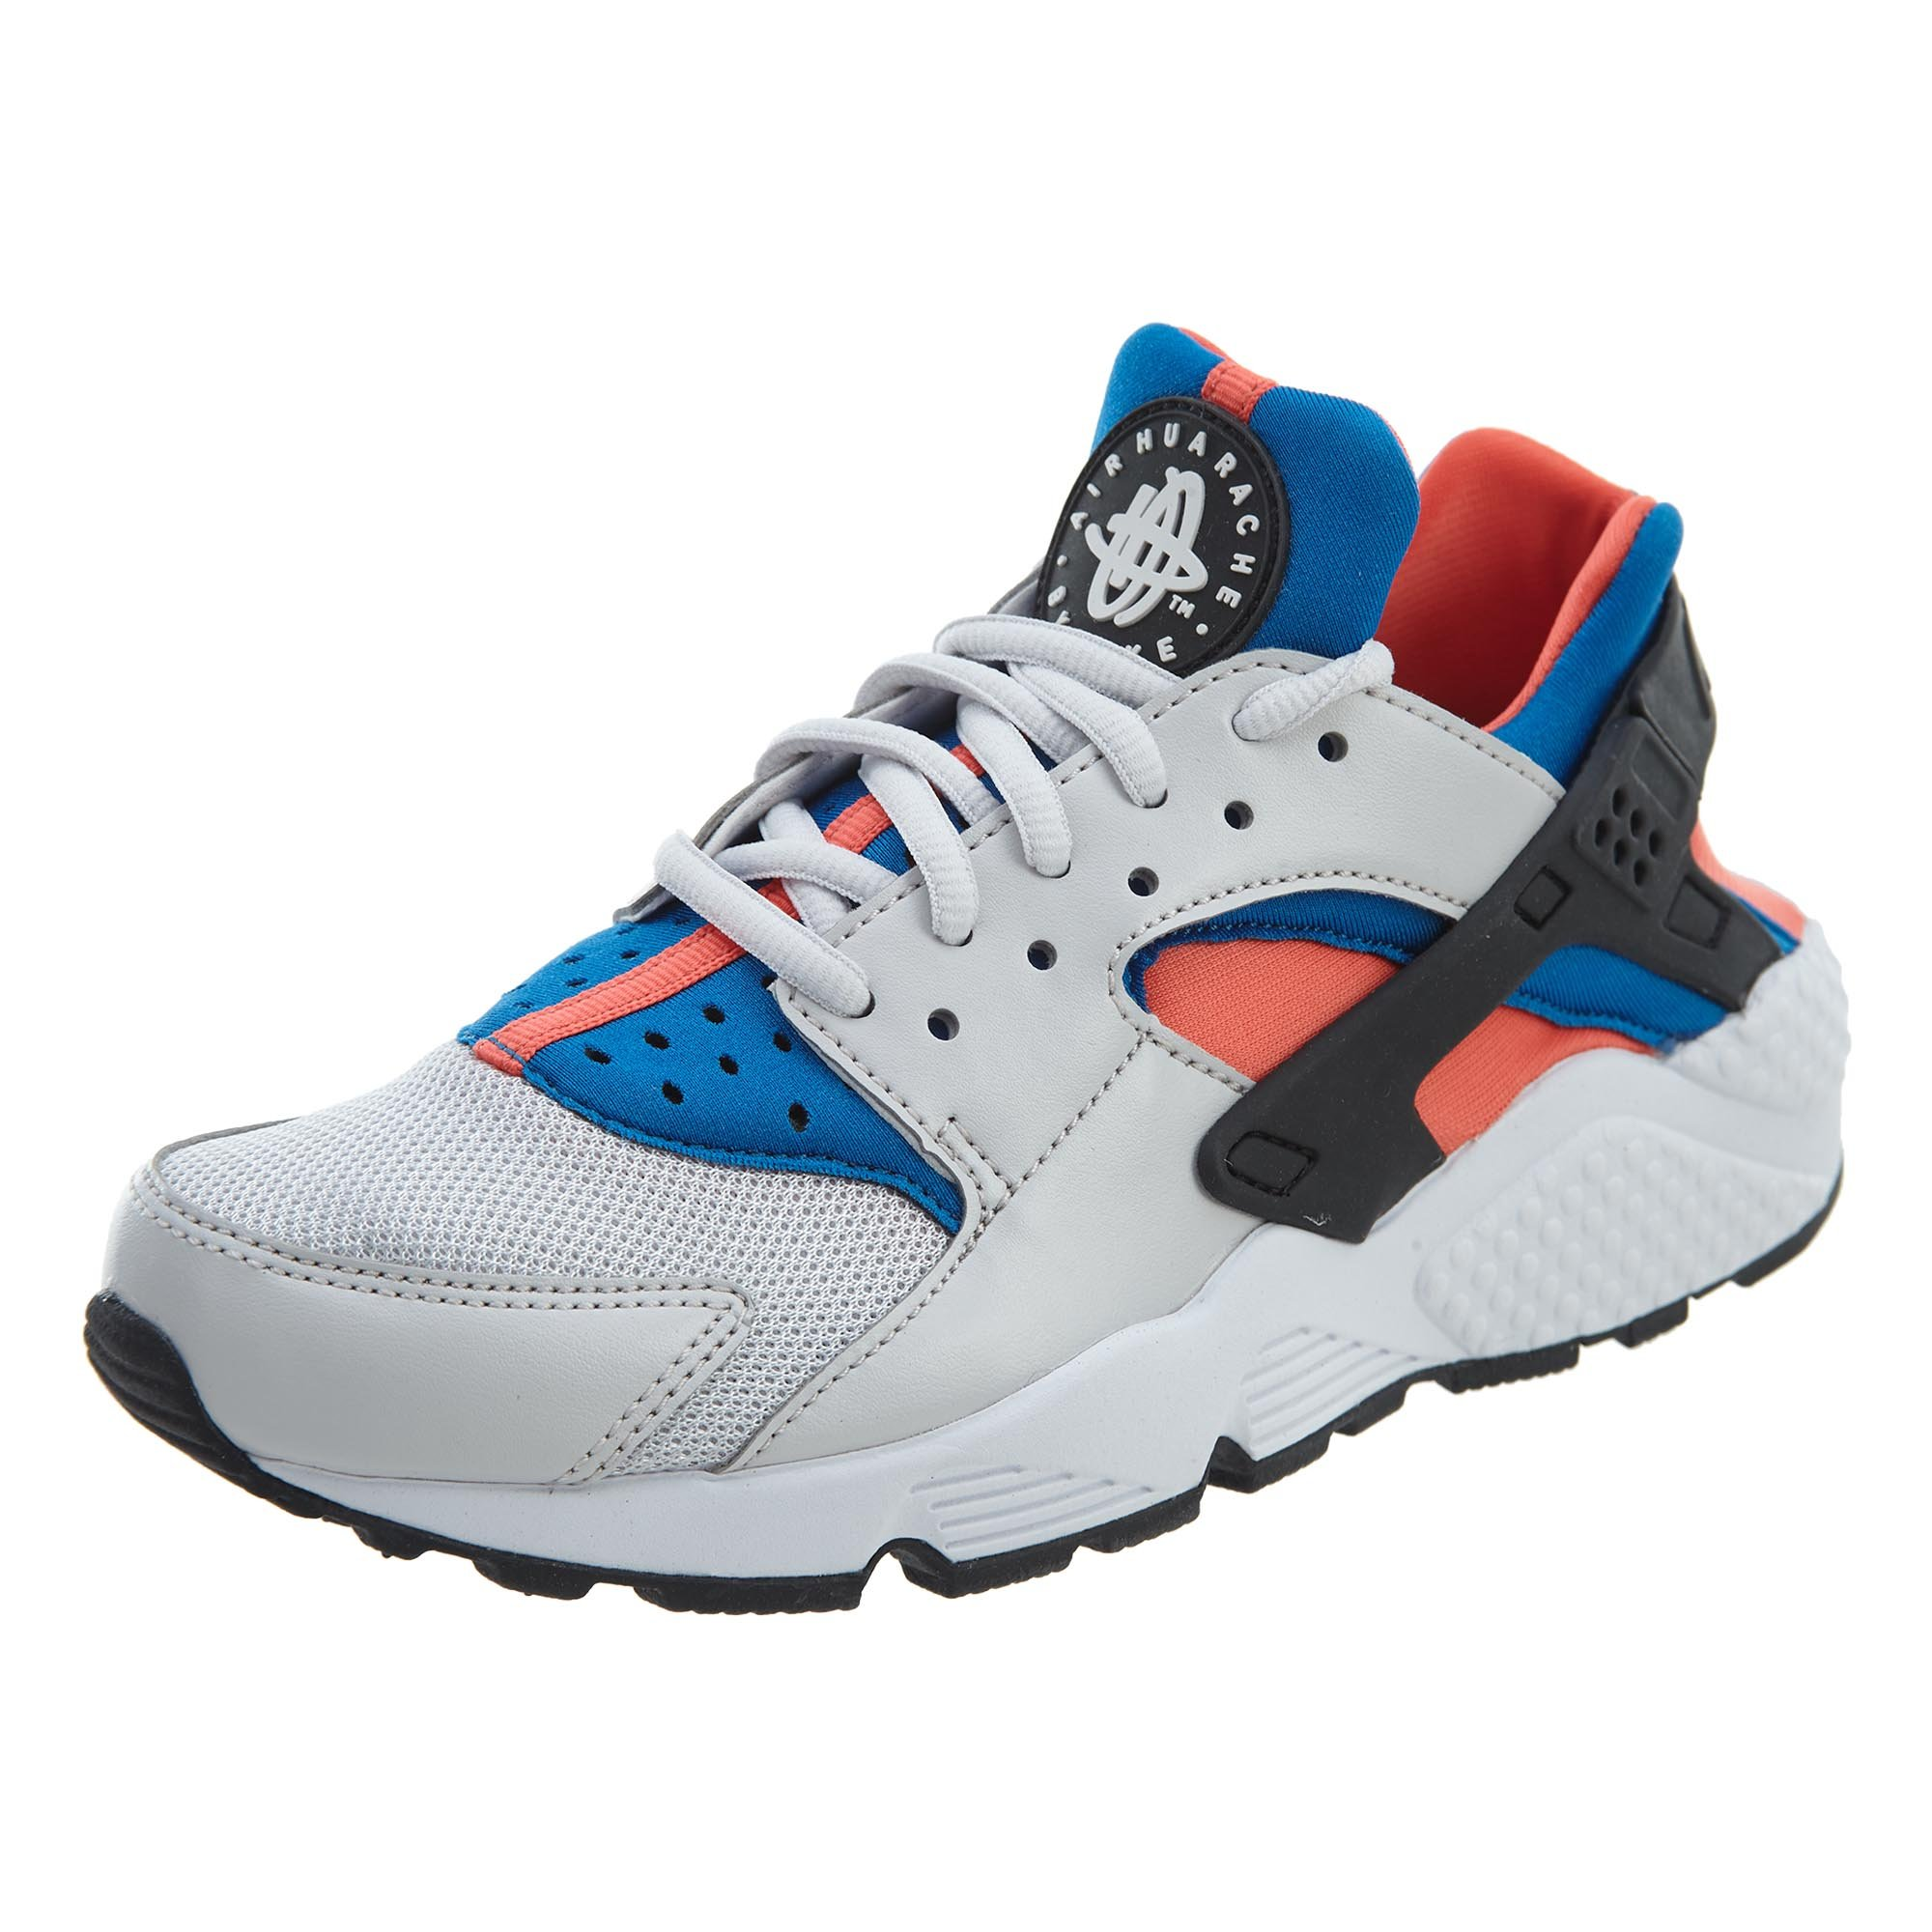 89193cf38c78 Galleon - Nike Women s Air Huarache Run Vast Grey Black Rush Coral Running  Shoe 7 Women US